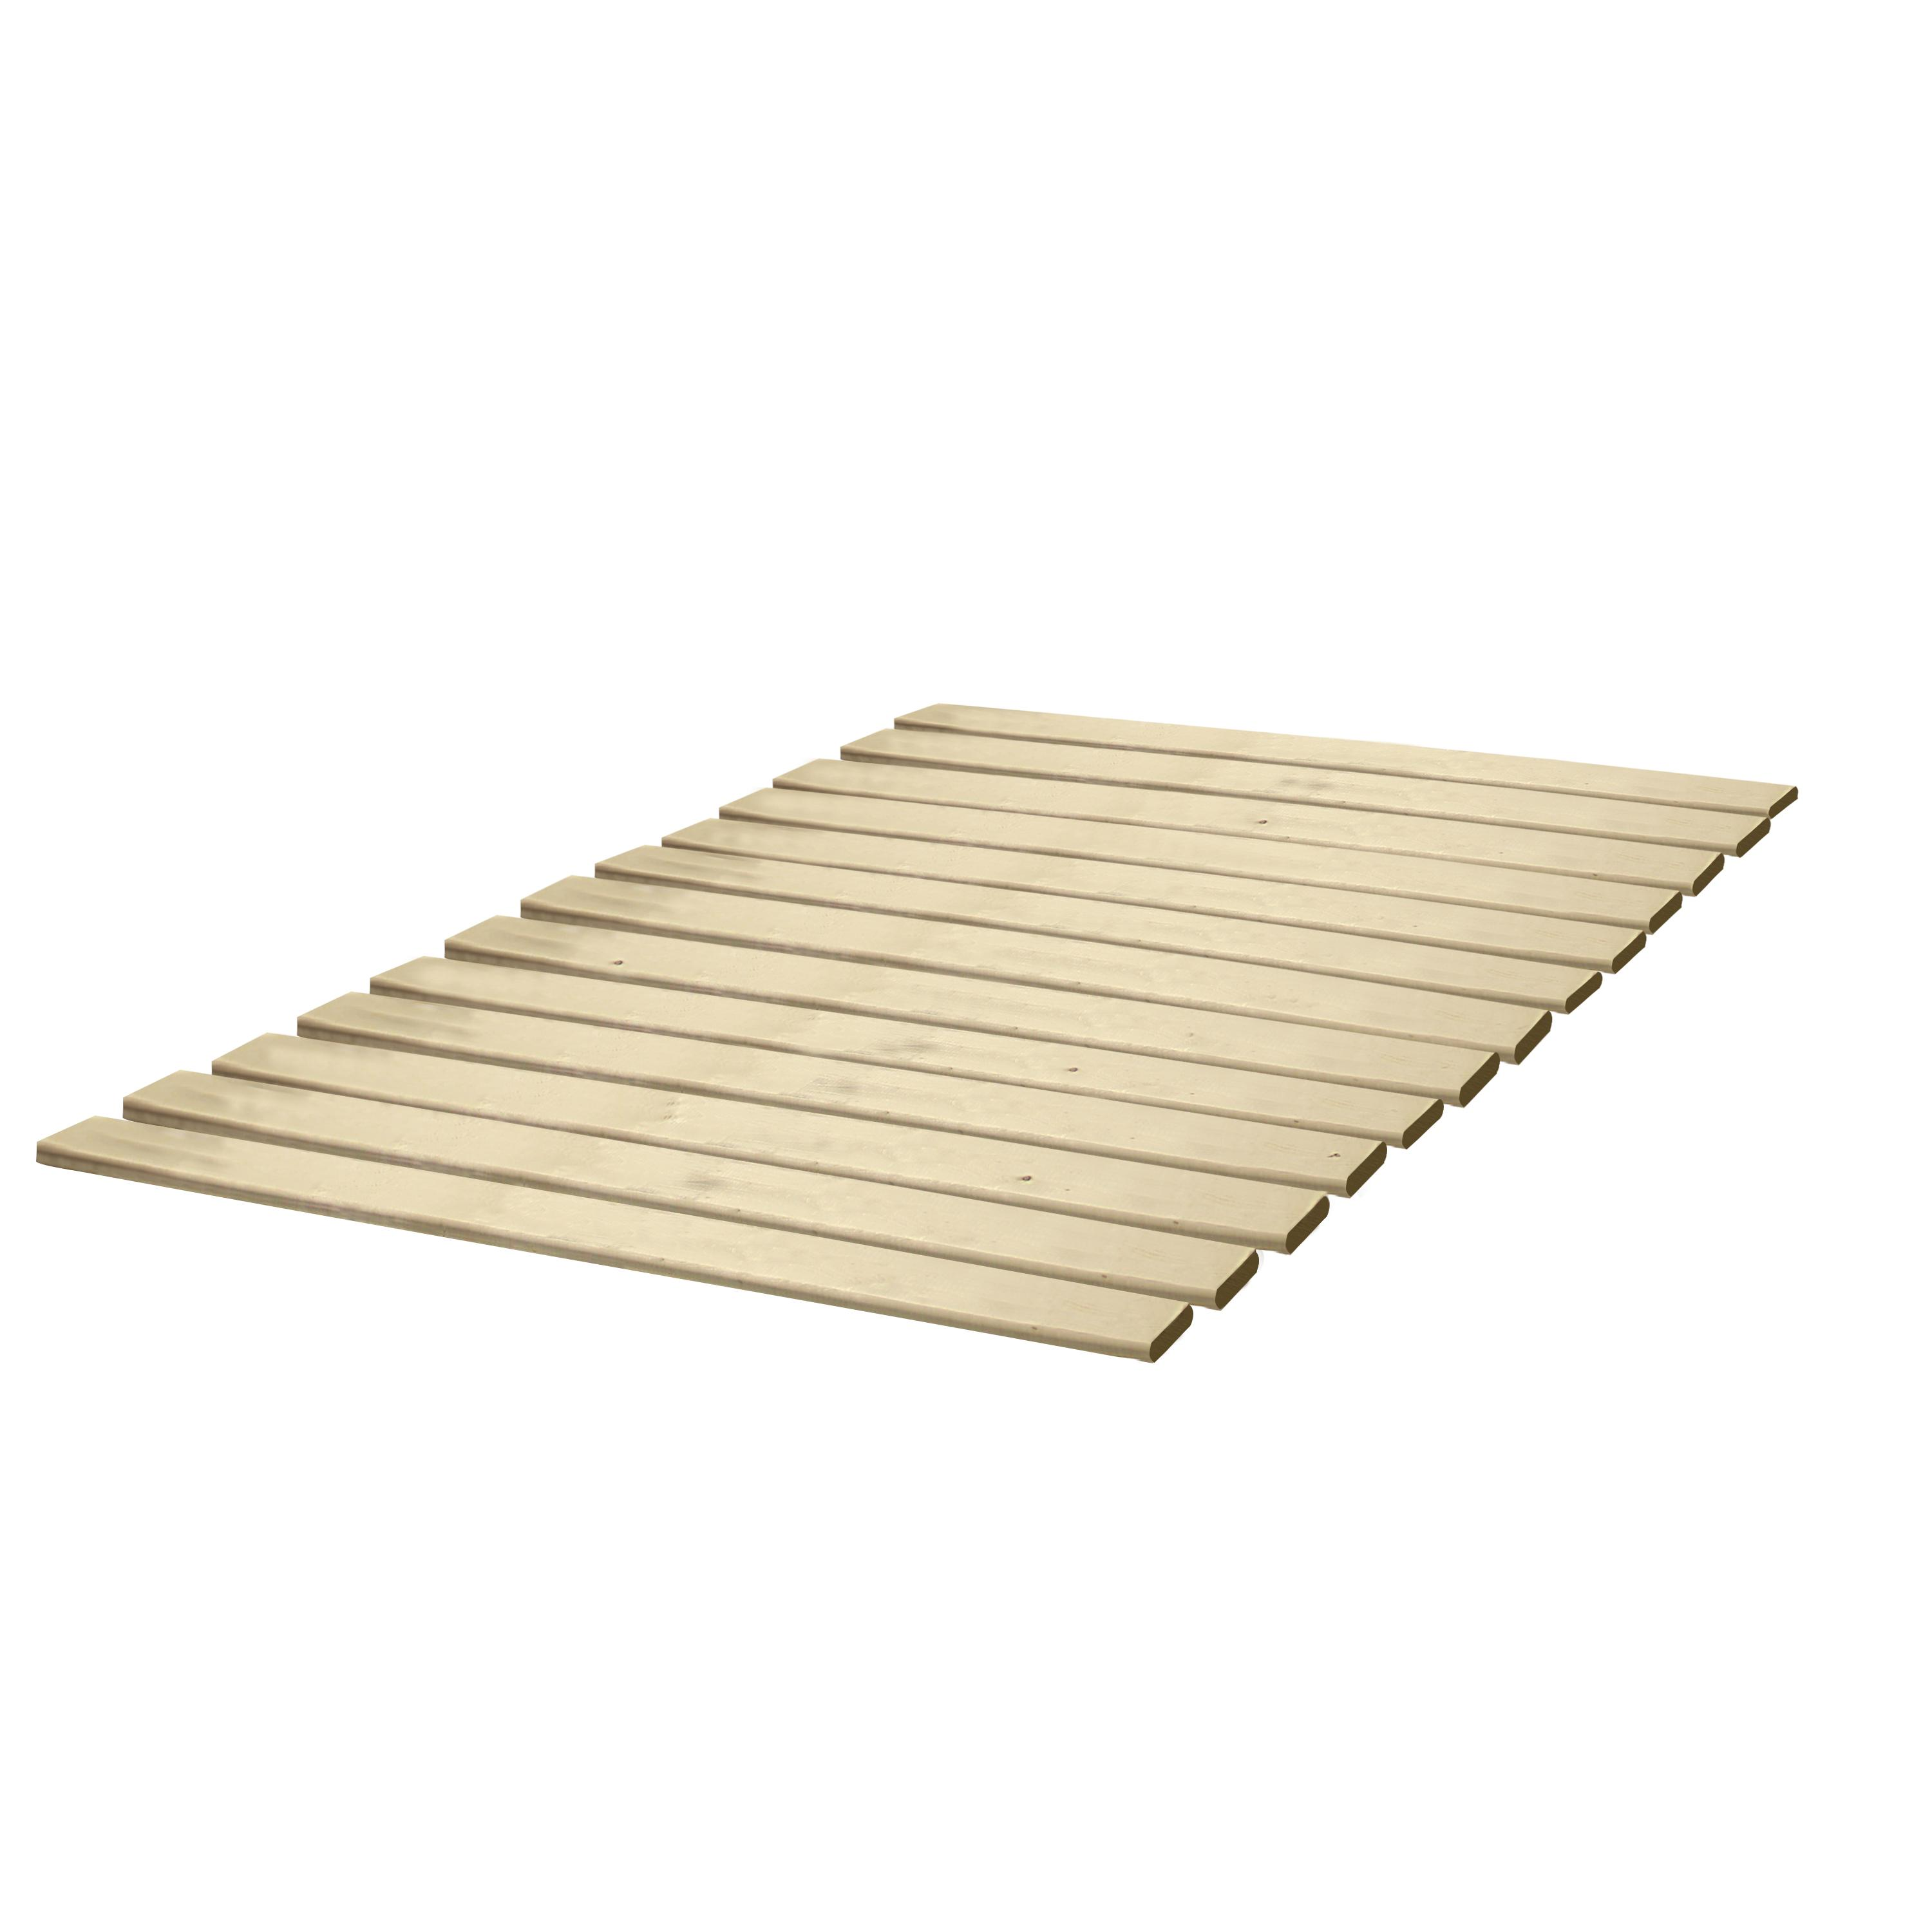 classic brands wooden bed slatsbunkie board solid wood any  - view larger